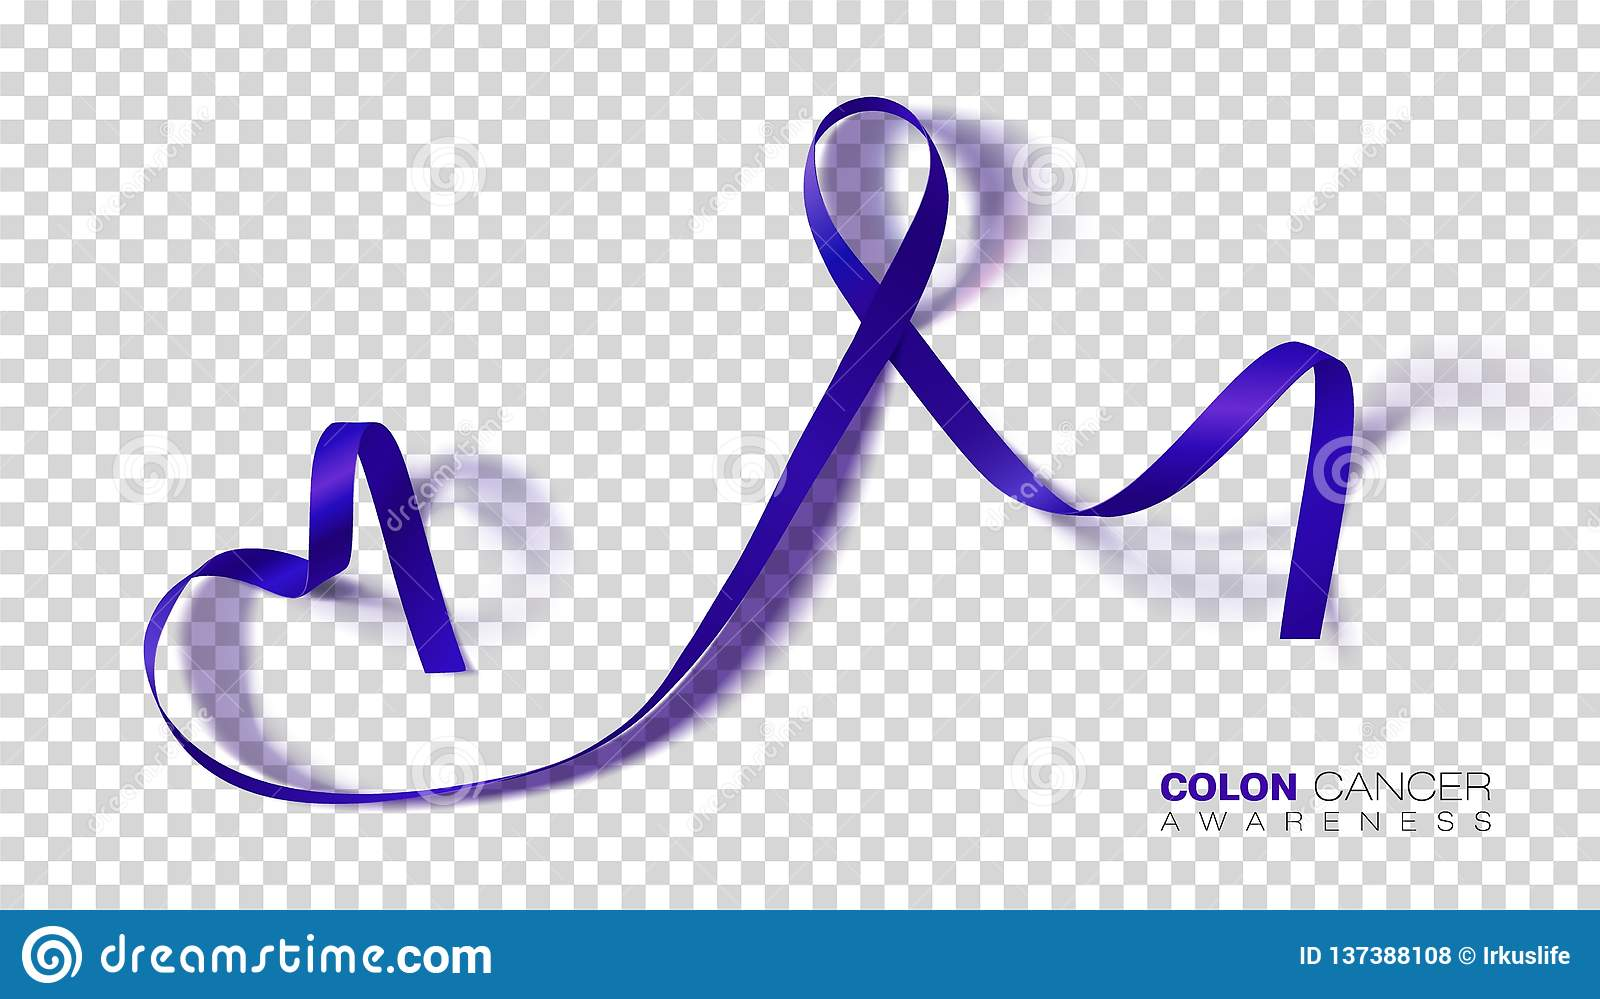 Colon Cancer Awareness Month Dark Blue Color Ribbon Isolated On Transparent Background Colorectal Cancer Vector Design Template Stock Illustration Illustration Of Graphic Background 137388108